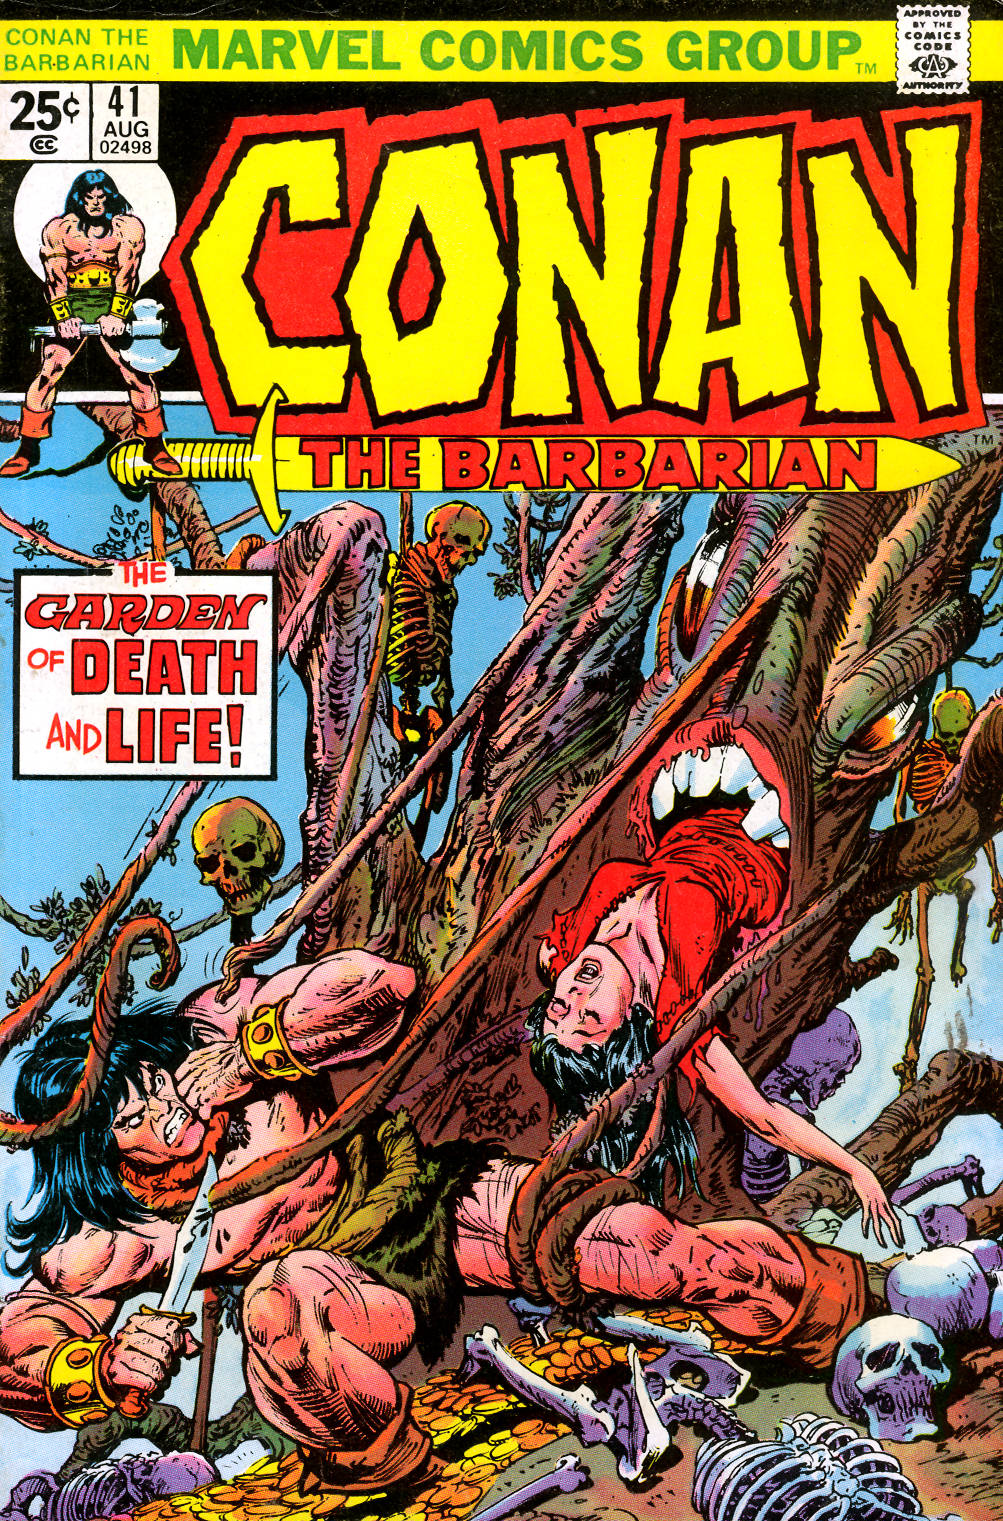 Conan the Barbarian (1970) Issue #41 #53 - English 1